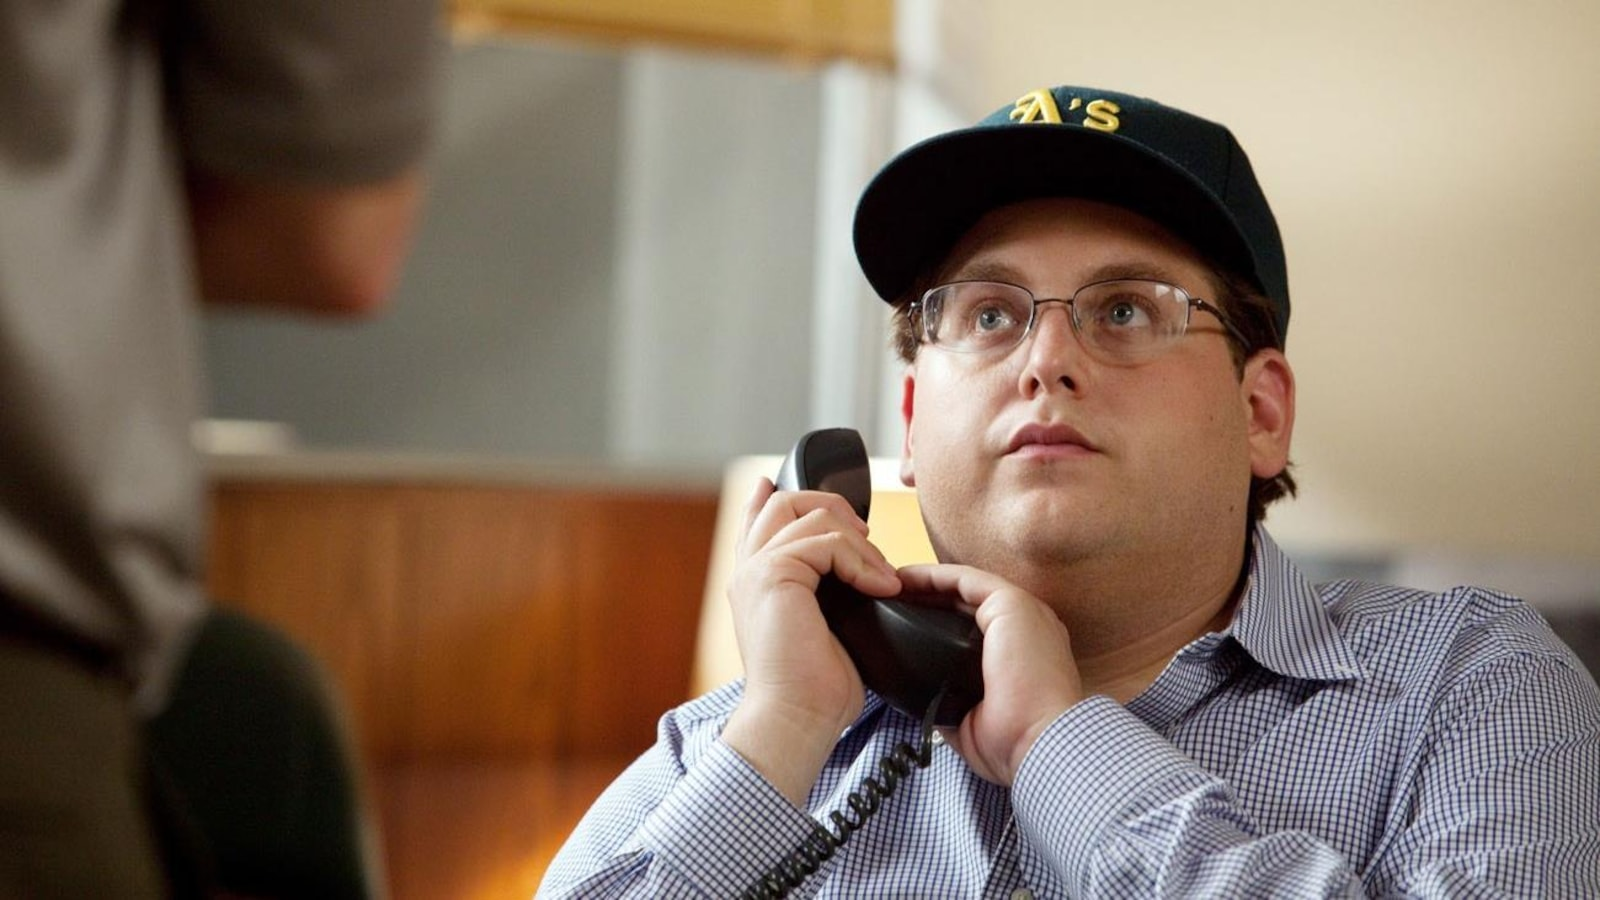 A man (Jonah Hill) with a cap, one hand on the receiver of his phone.